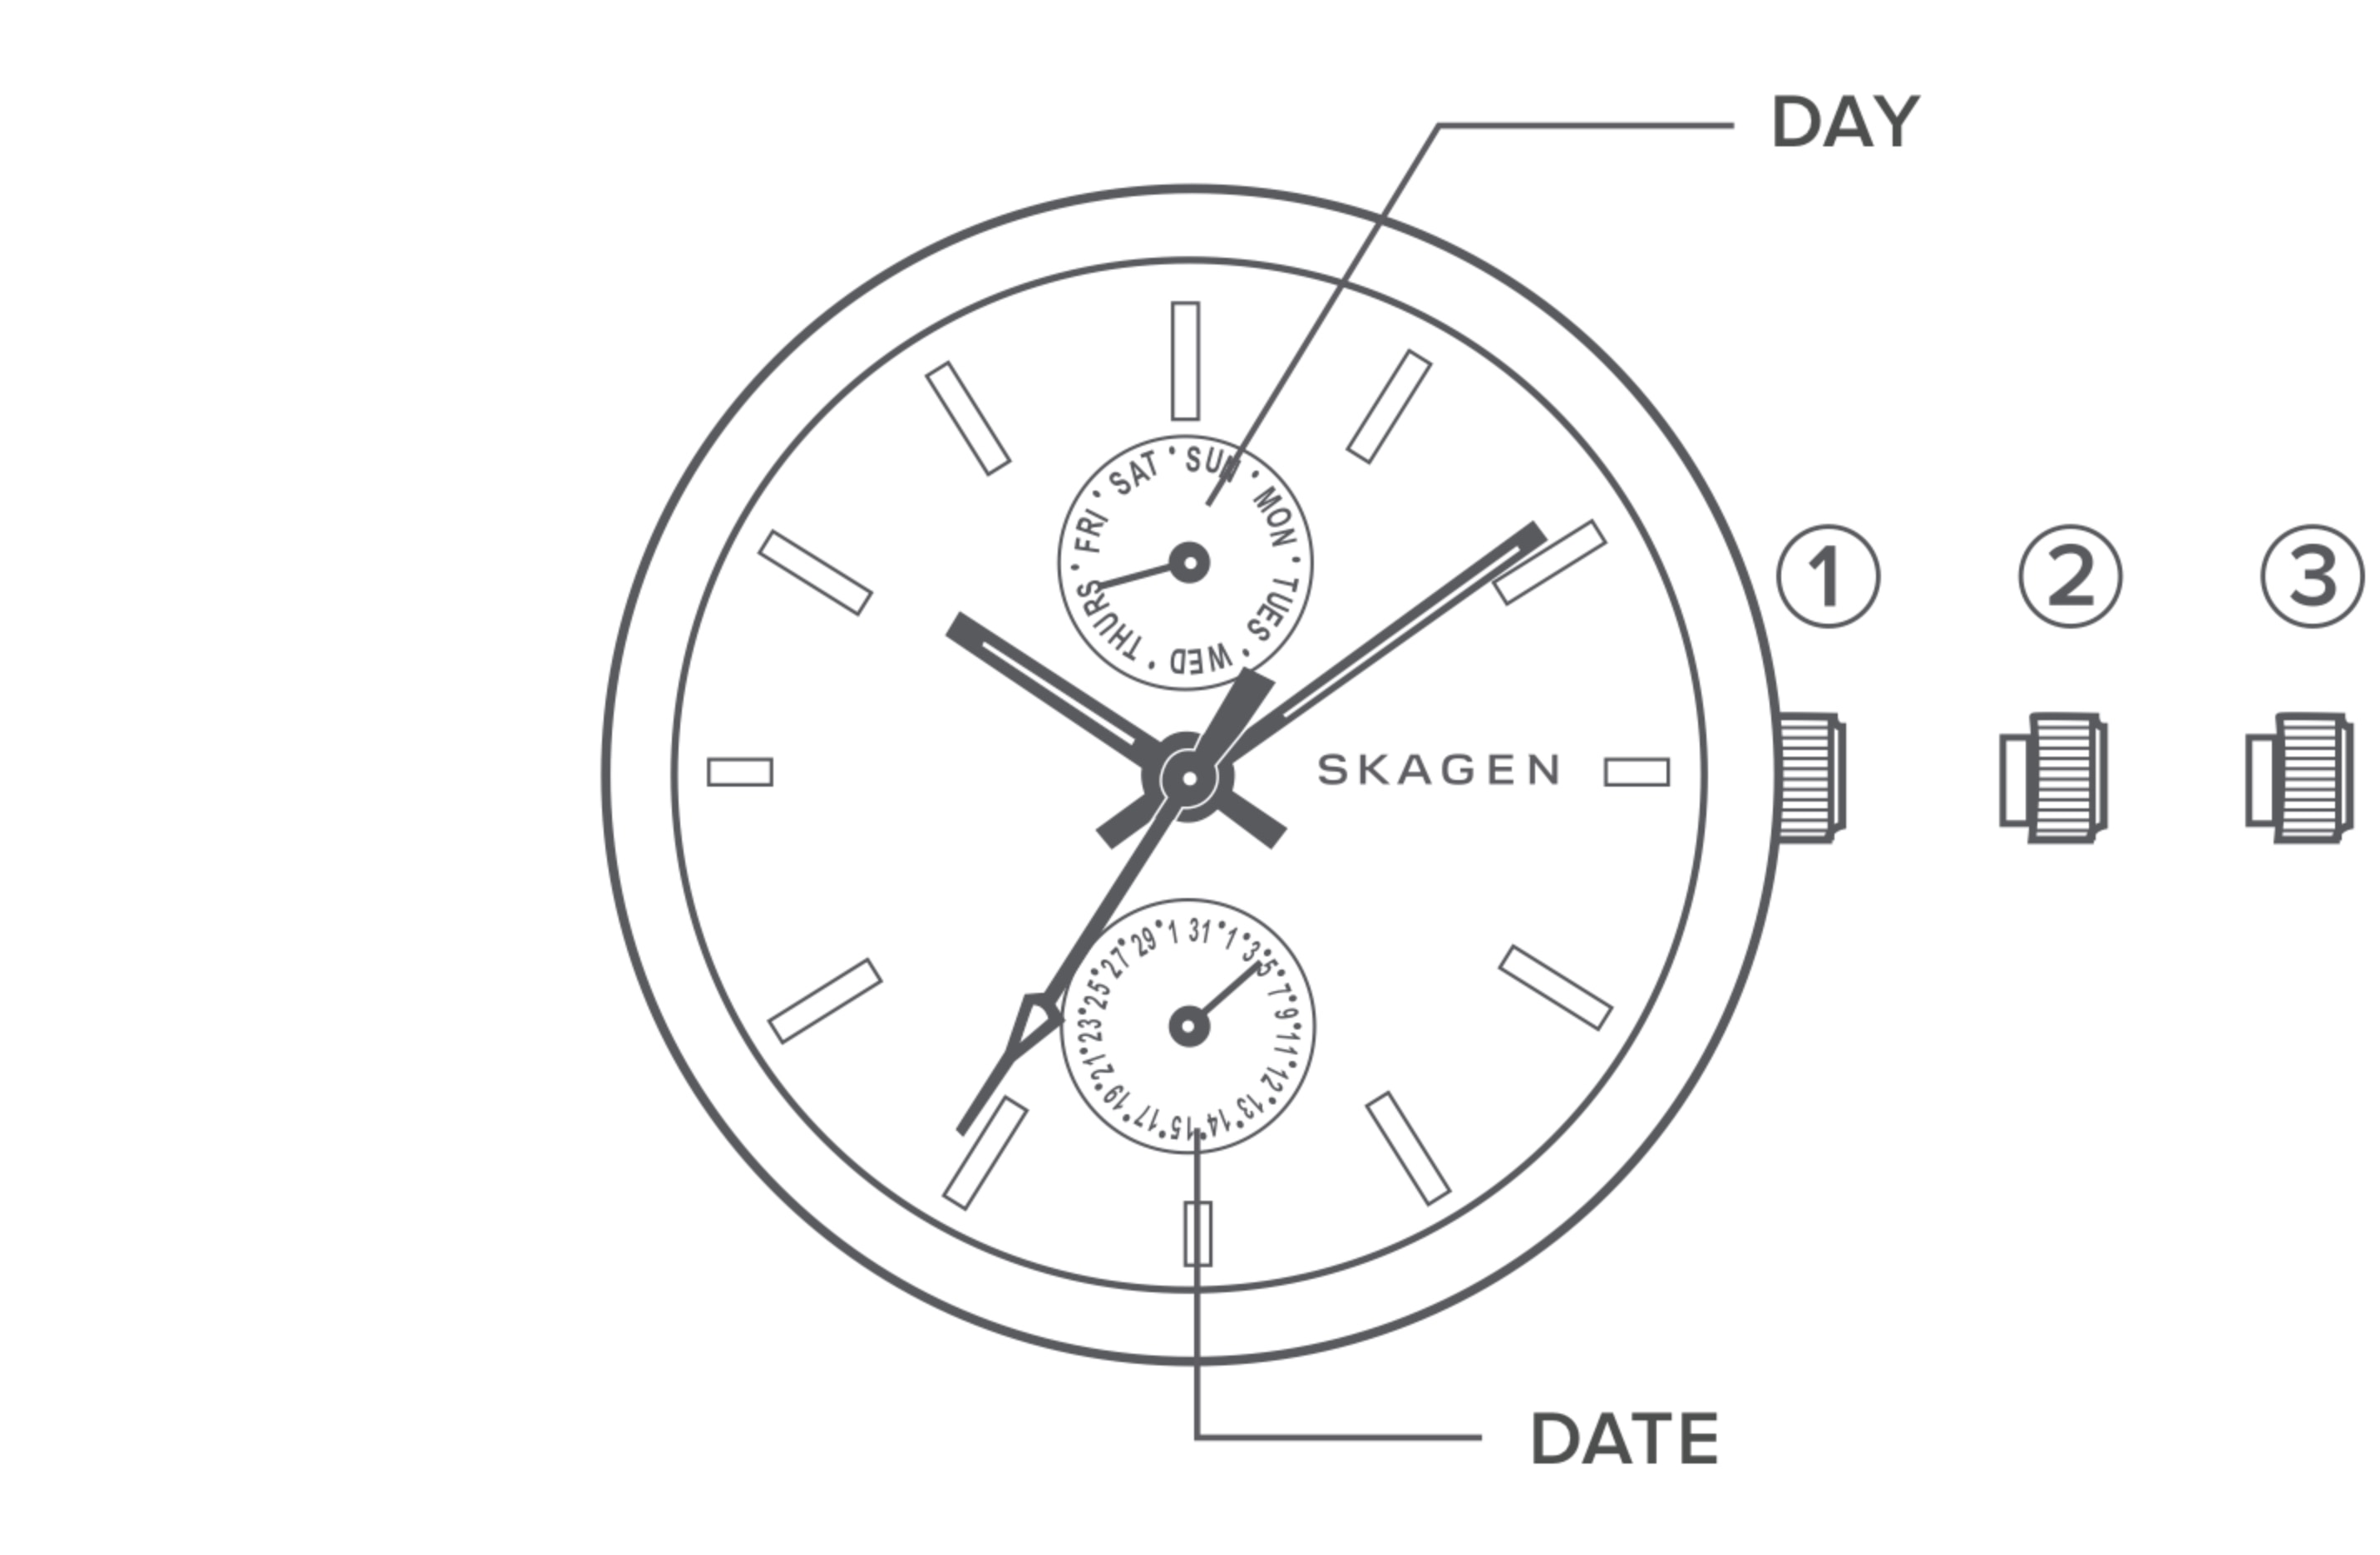 Line art of a multifunction watch dial, identifying the crown, day and date.